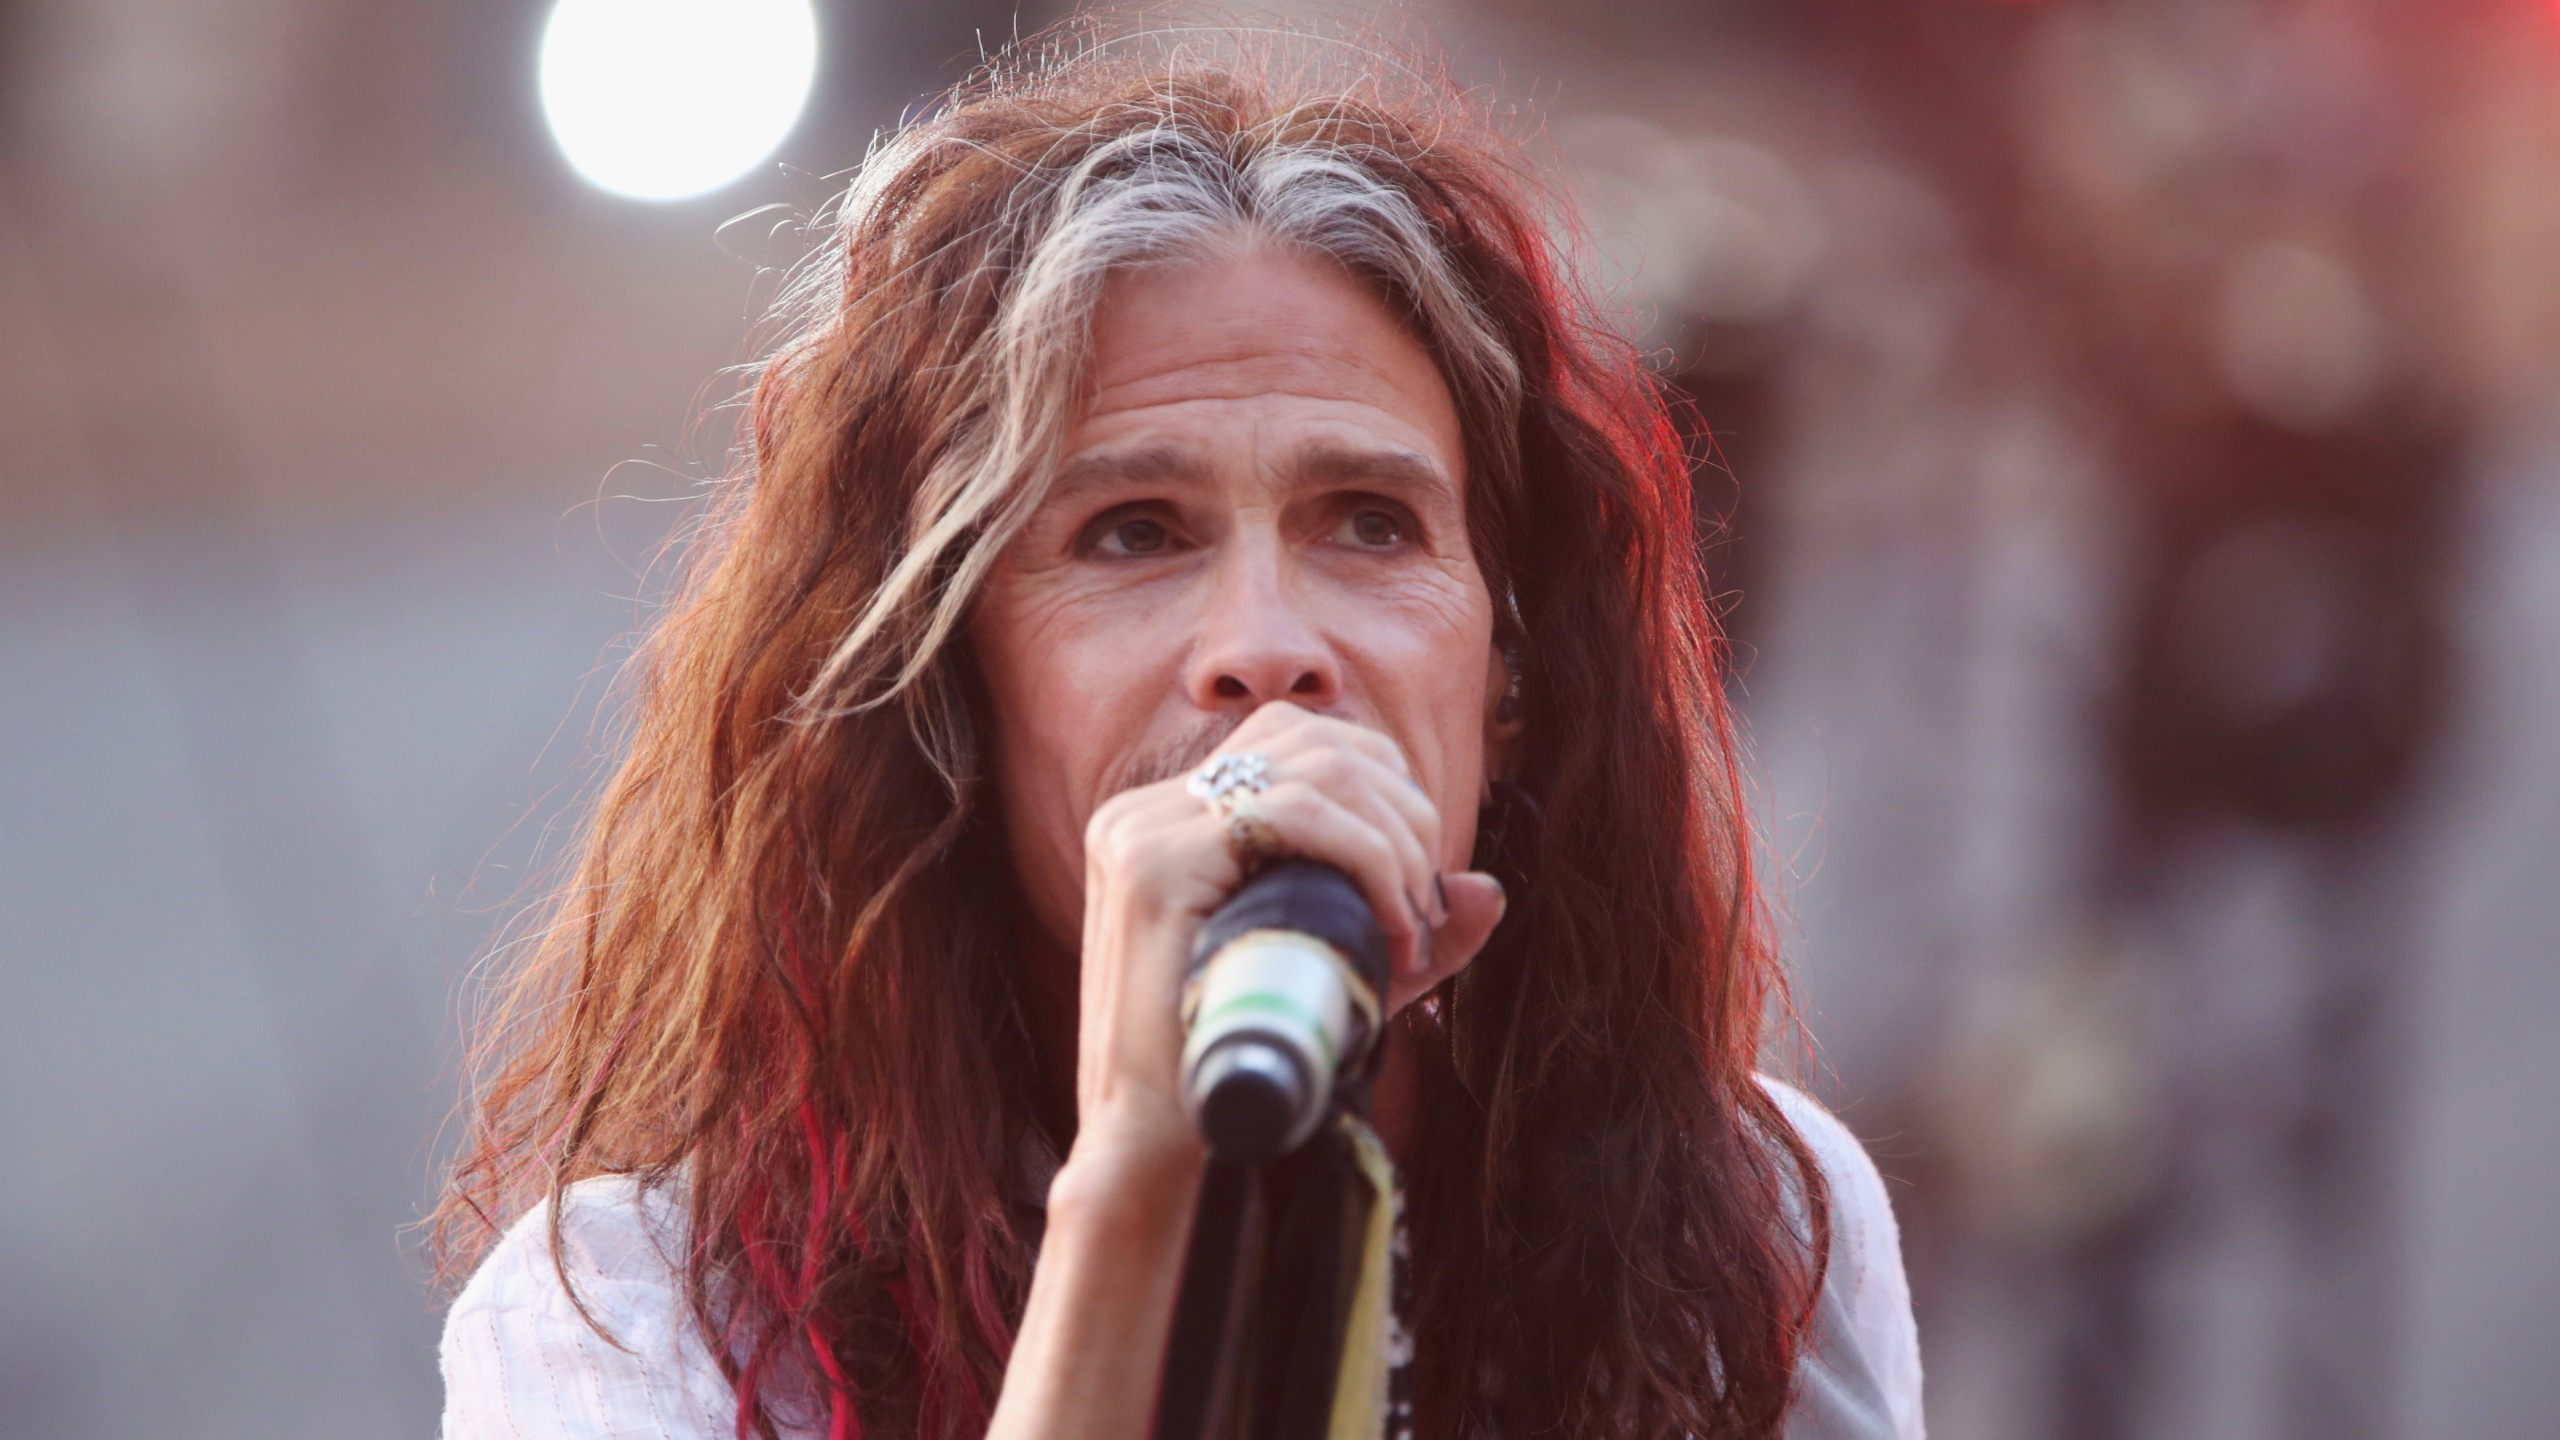 Steven Tyler performs at the Andrea Bocelli show as part of the 2017 Celebrity Fight Night in Italy Benefiting The Andrea Bocelli Foundation and the Muhammad Ali Parkinson Center on September 8, 2017 in Rome. (Credit: Leibson/Getty Images for Celebrity Fight Night)